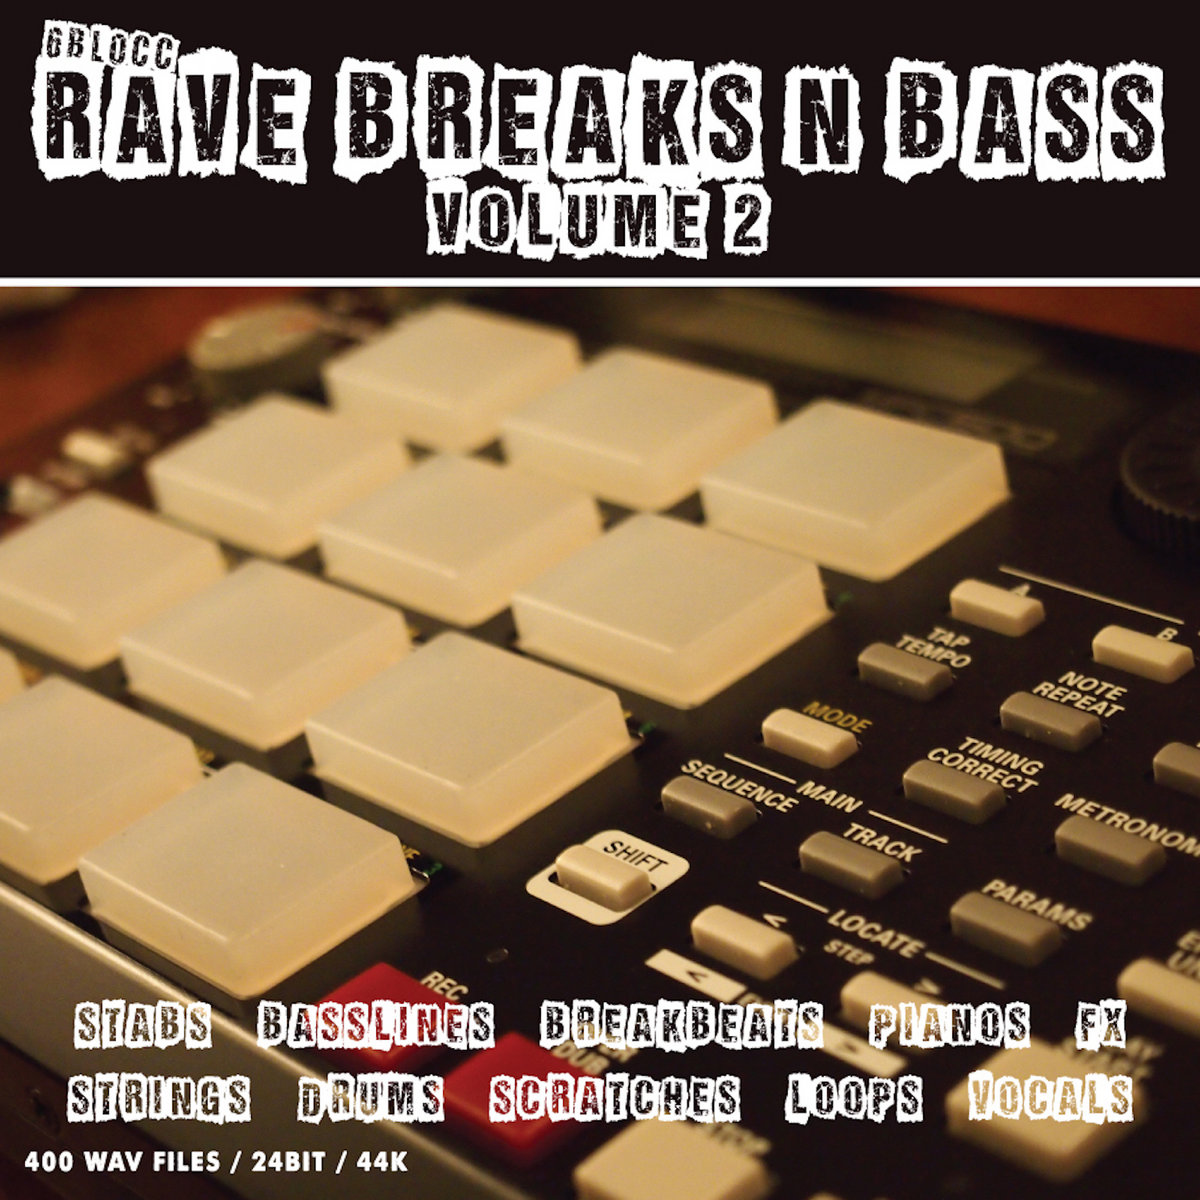 Rave Breaks n Bass Vol 2 | 6Blocc